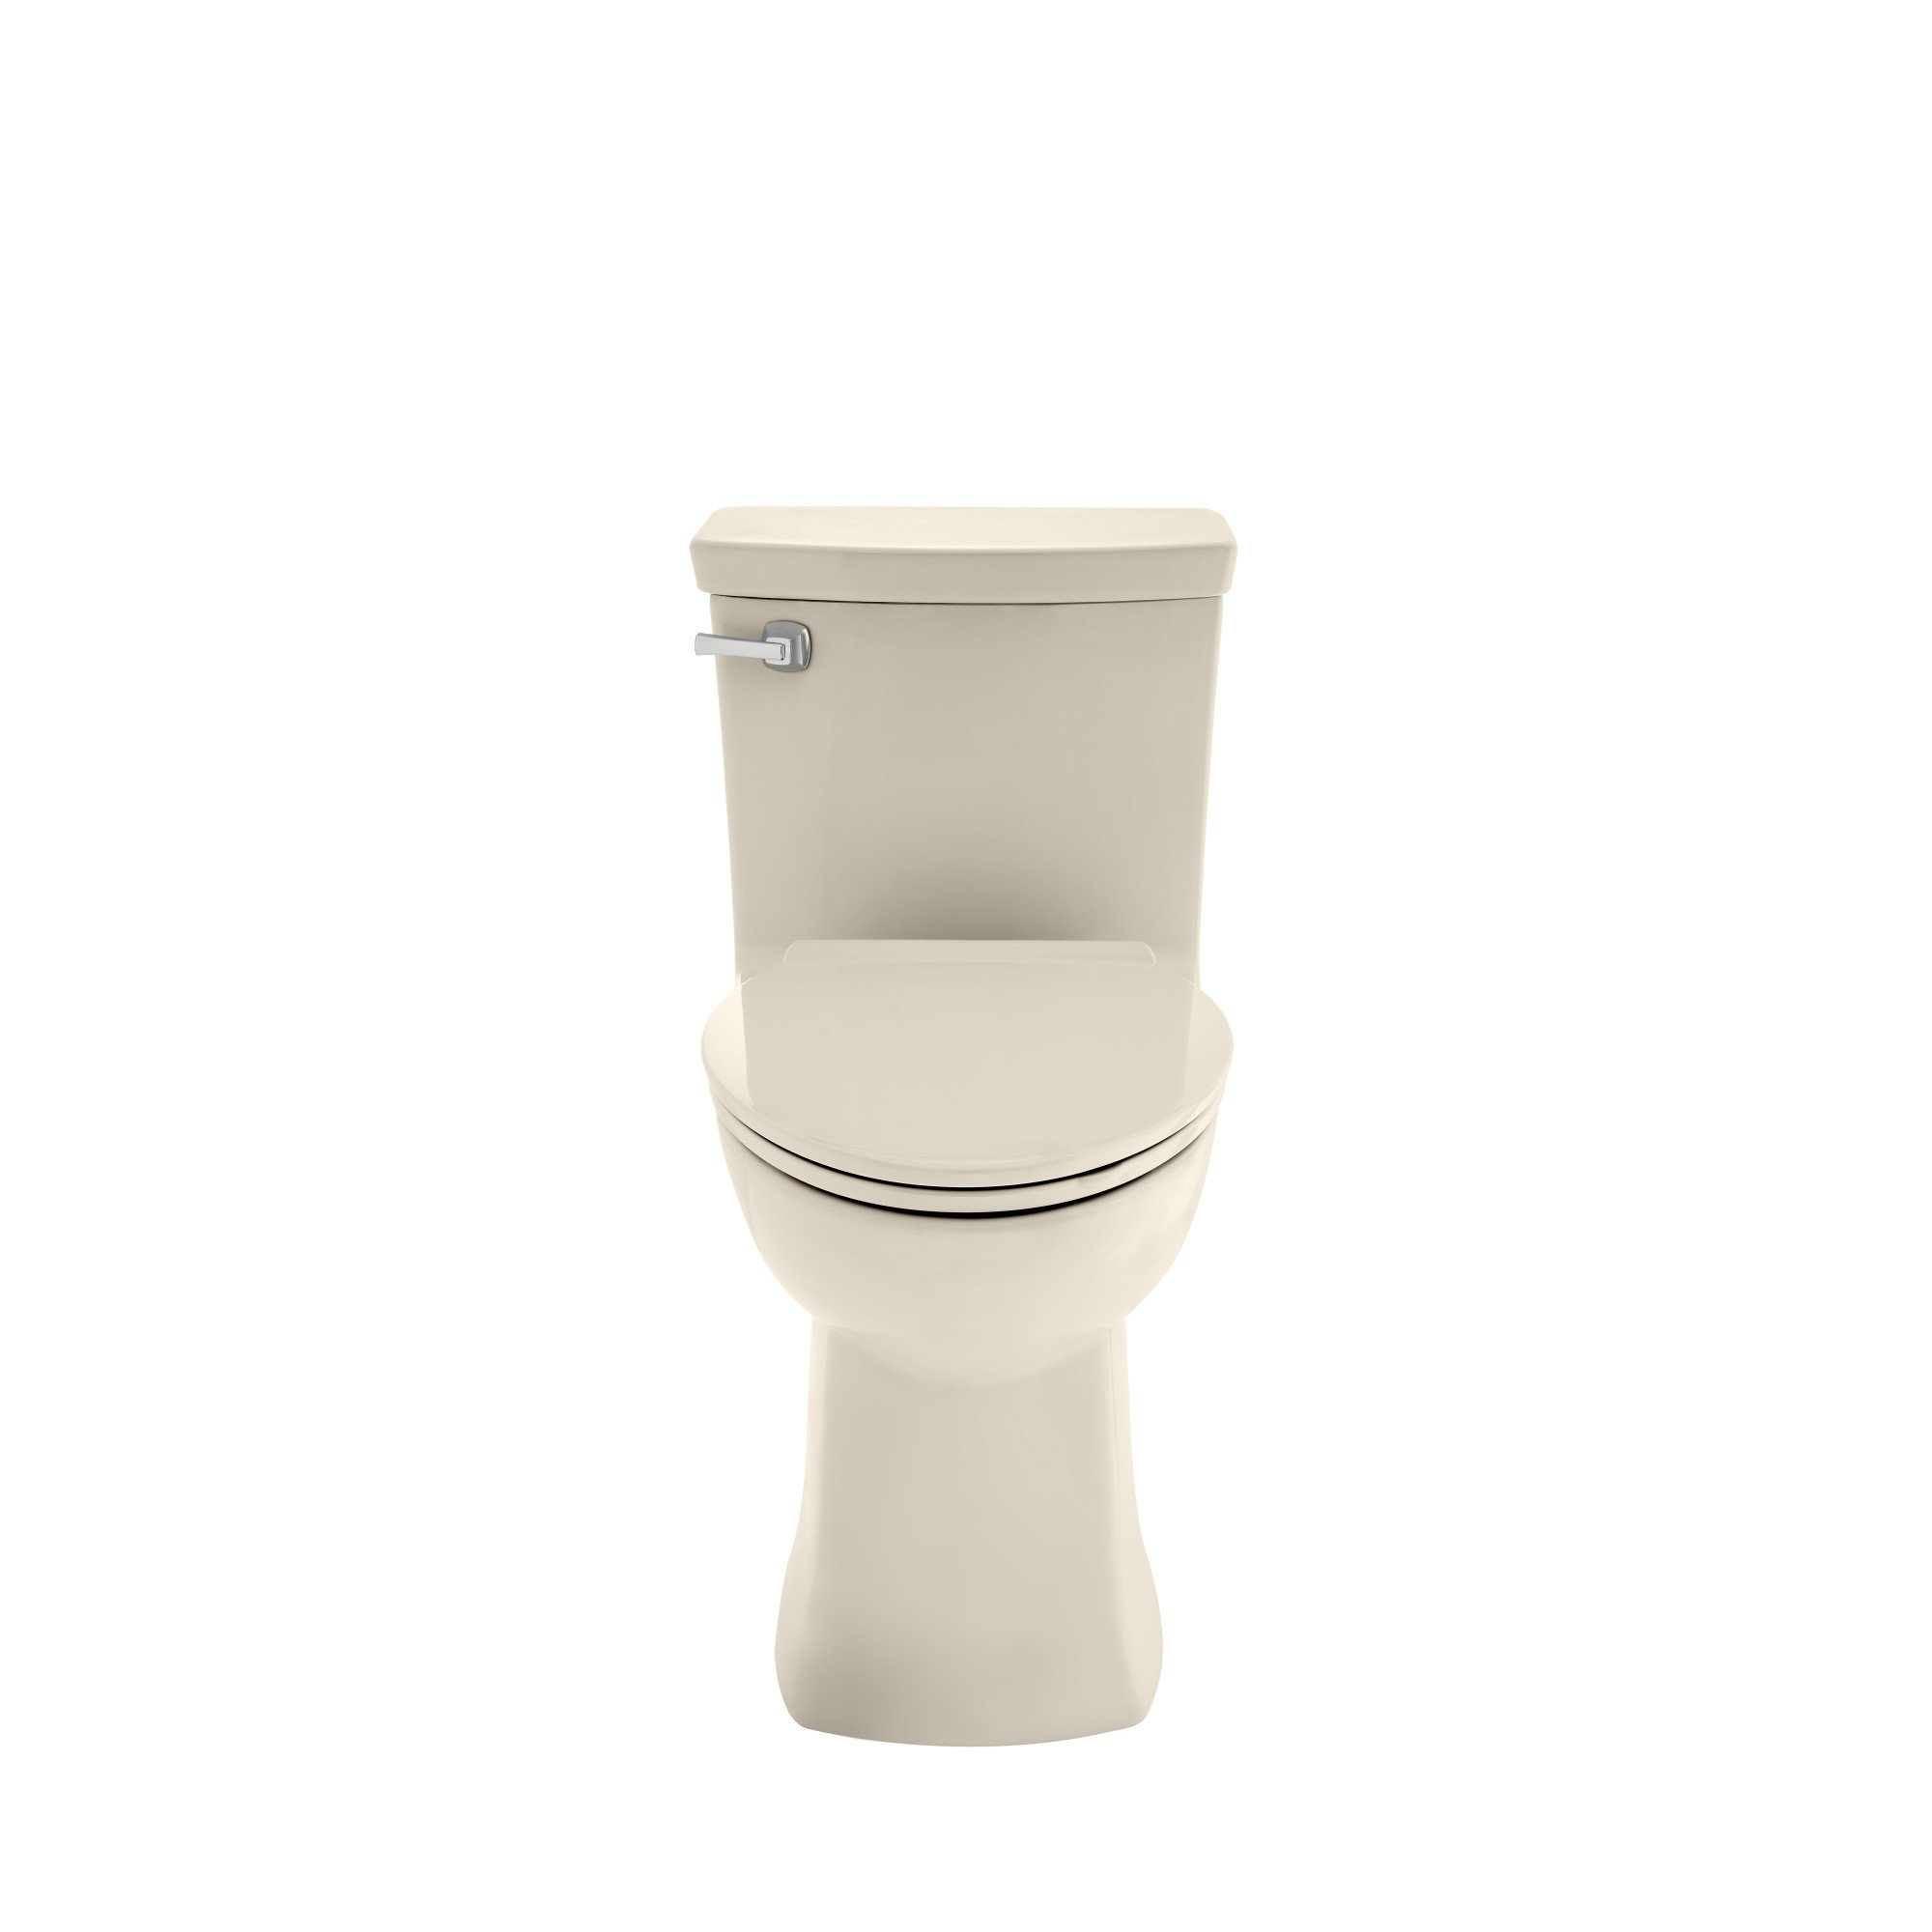 American Standard 2922A104.222 Townsend Vormax Right Height Elongated White One-Piece Toilet with Seat, Linen